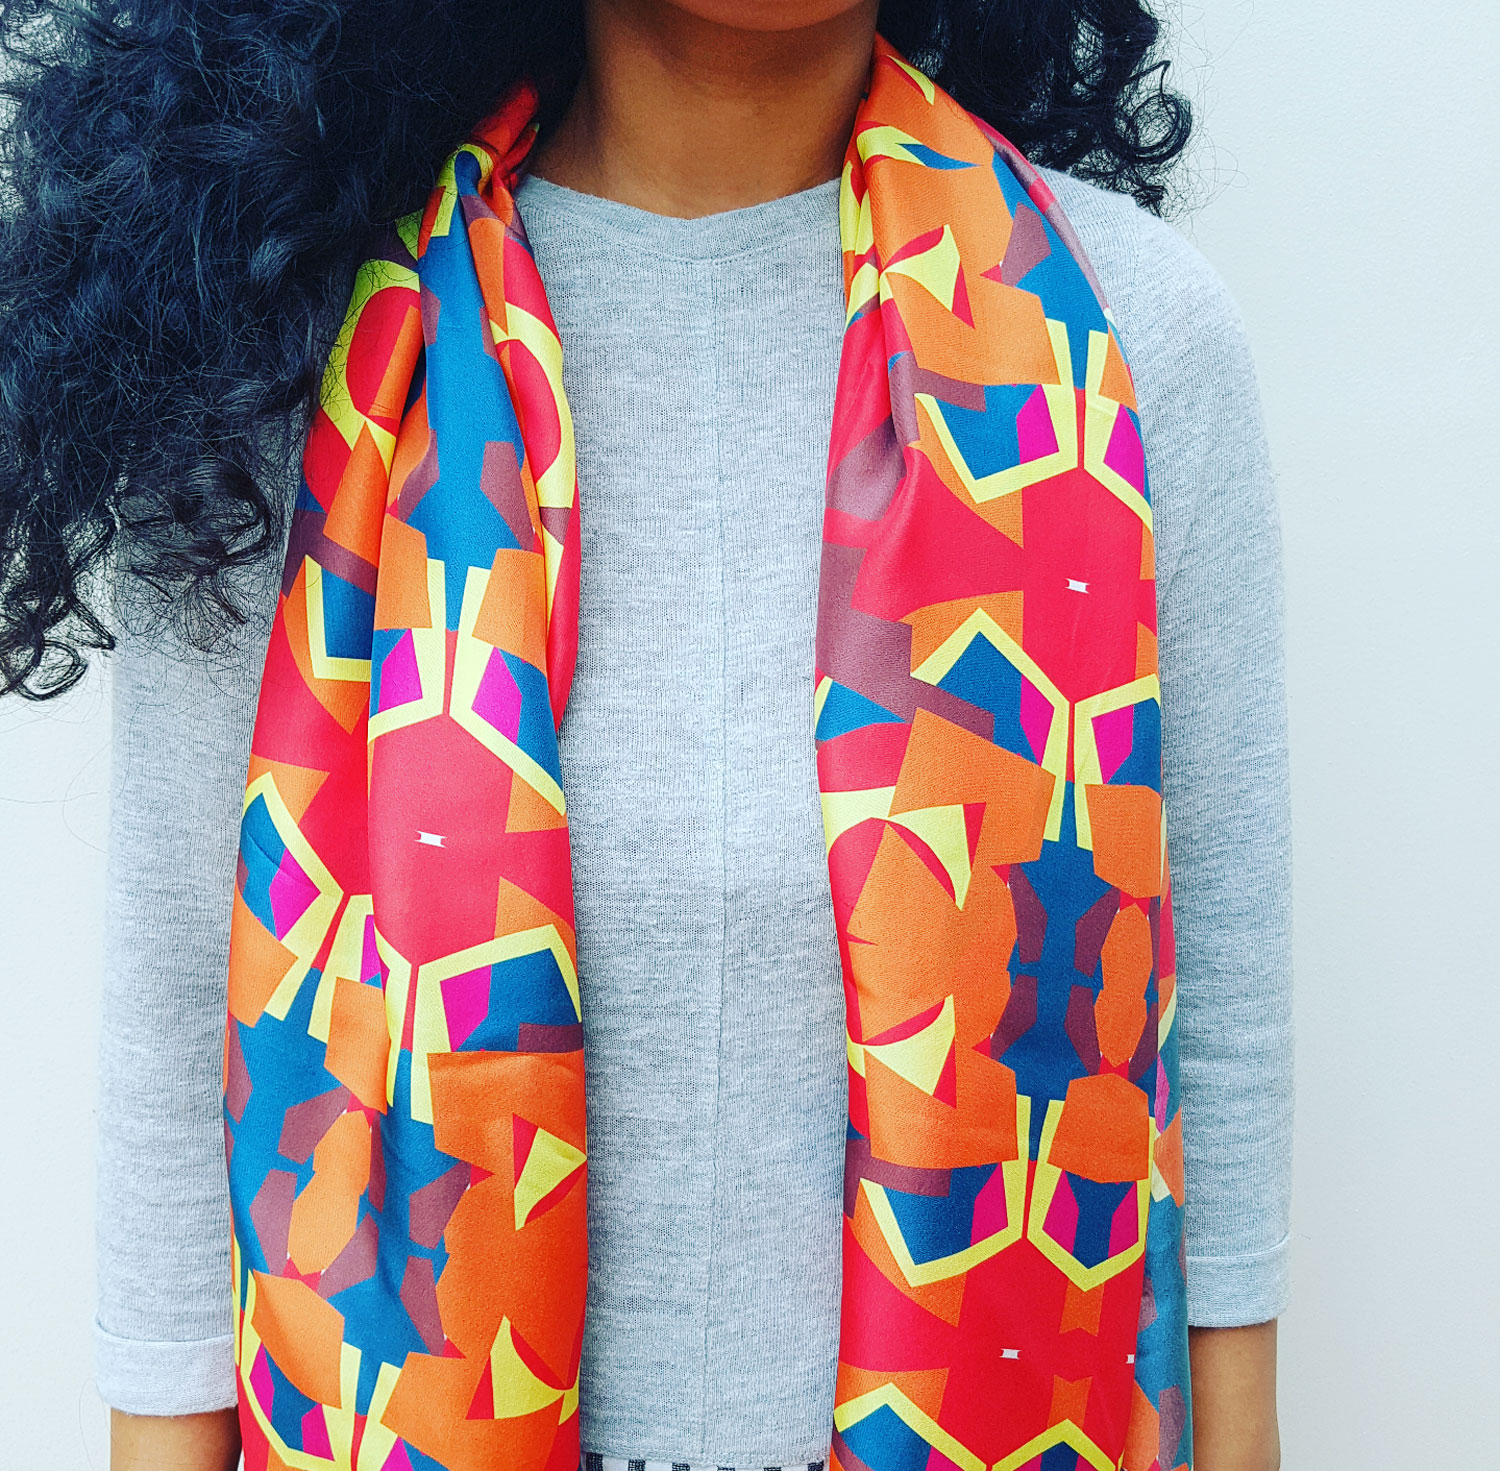 kirandeep-bassan-orange-fragmented-geo-scarf.jpg